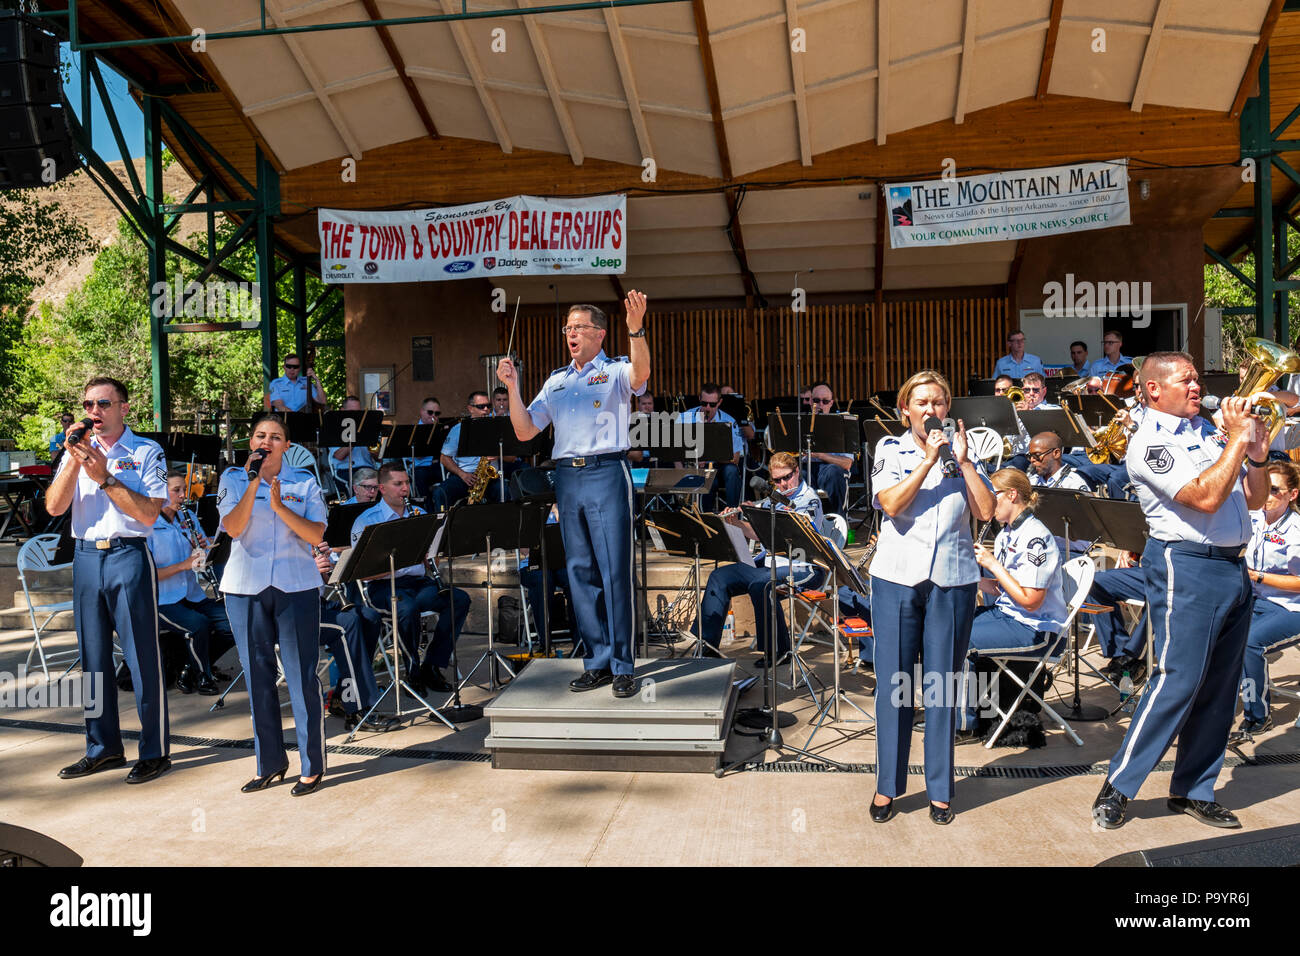 United States Air Force Brass Band plays a Fourth of July Concert in the Riverside Park band stand, Salida, Colorado, USA - Stock Image